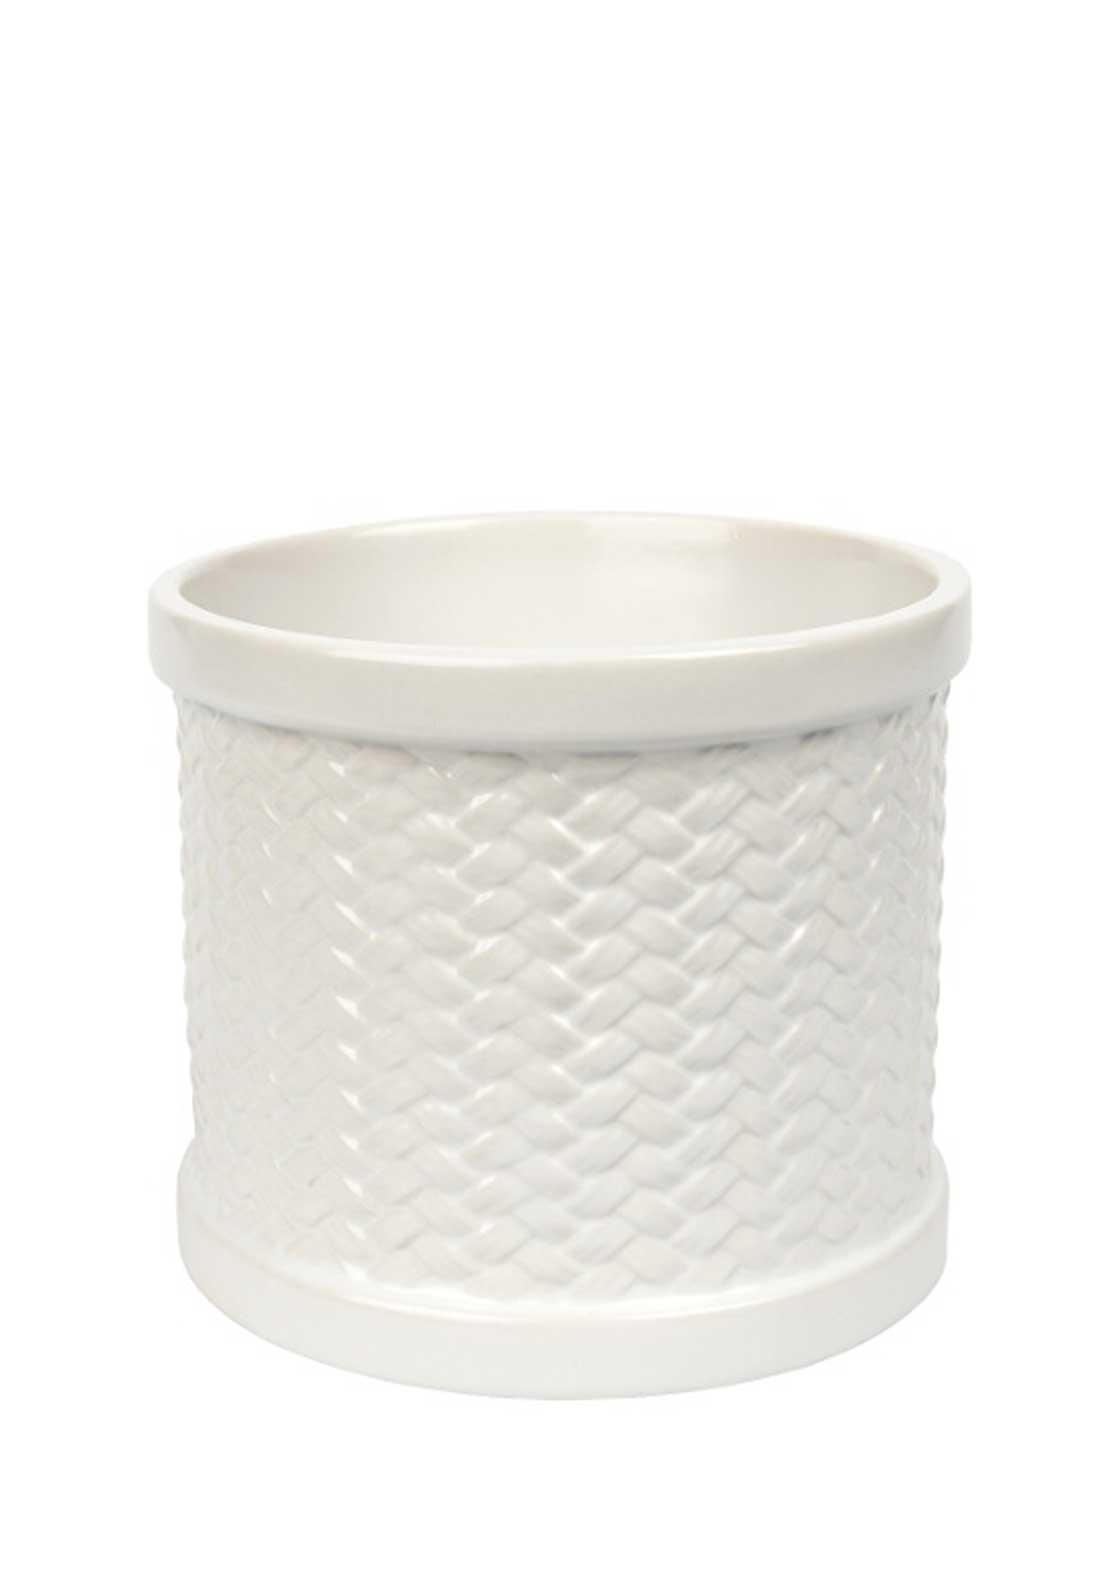 Yankee Candle Scenterpiece Easy Meltcup Warmer Weave, White